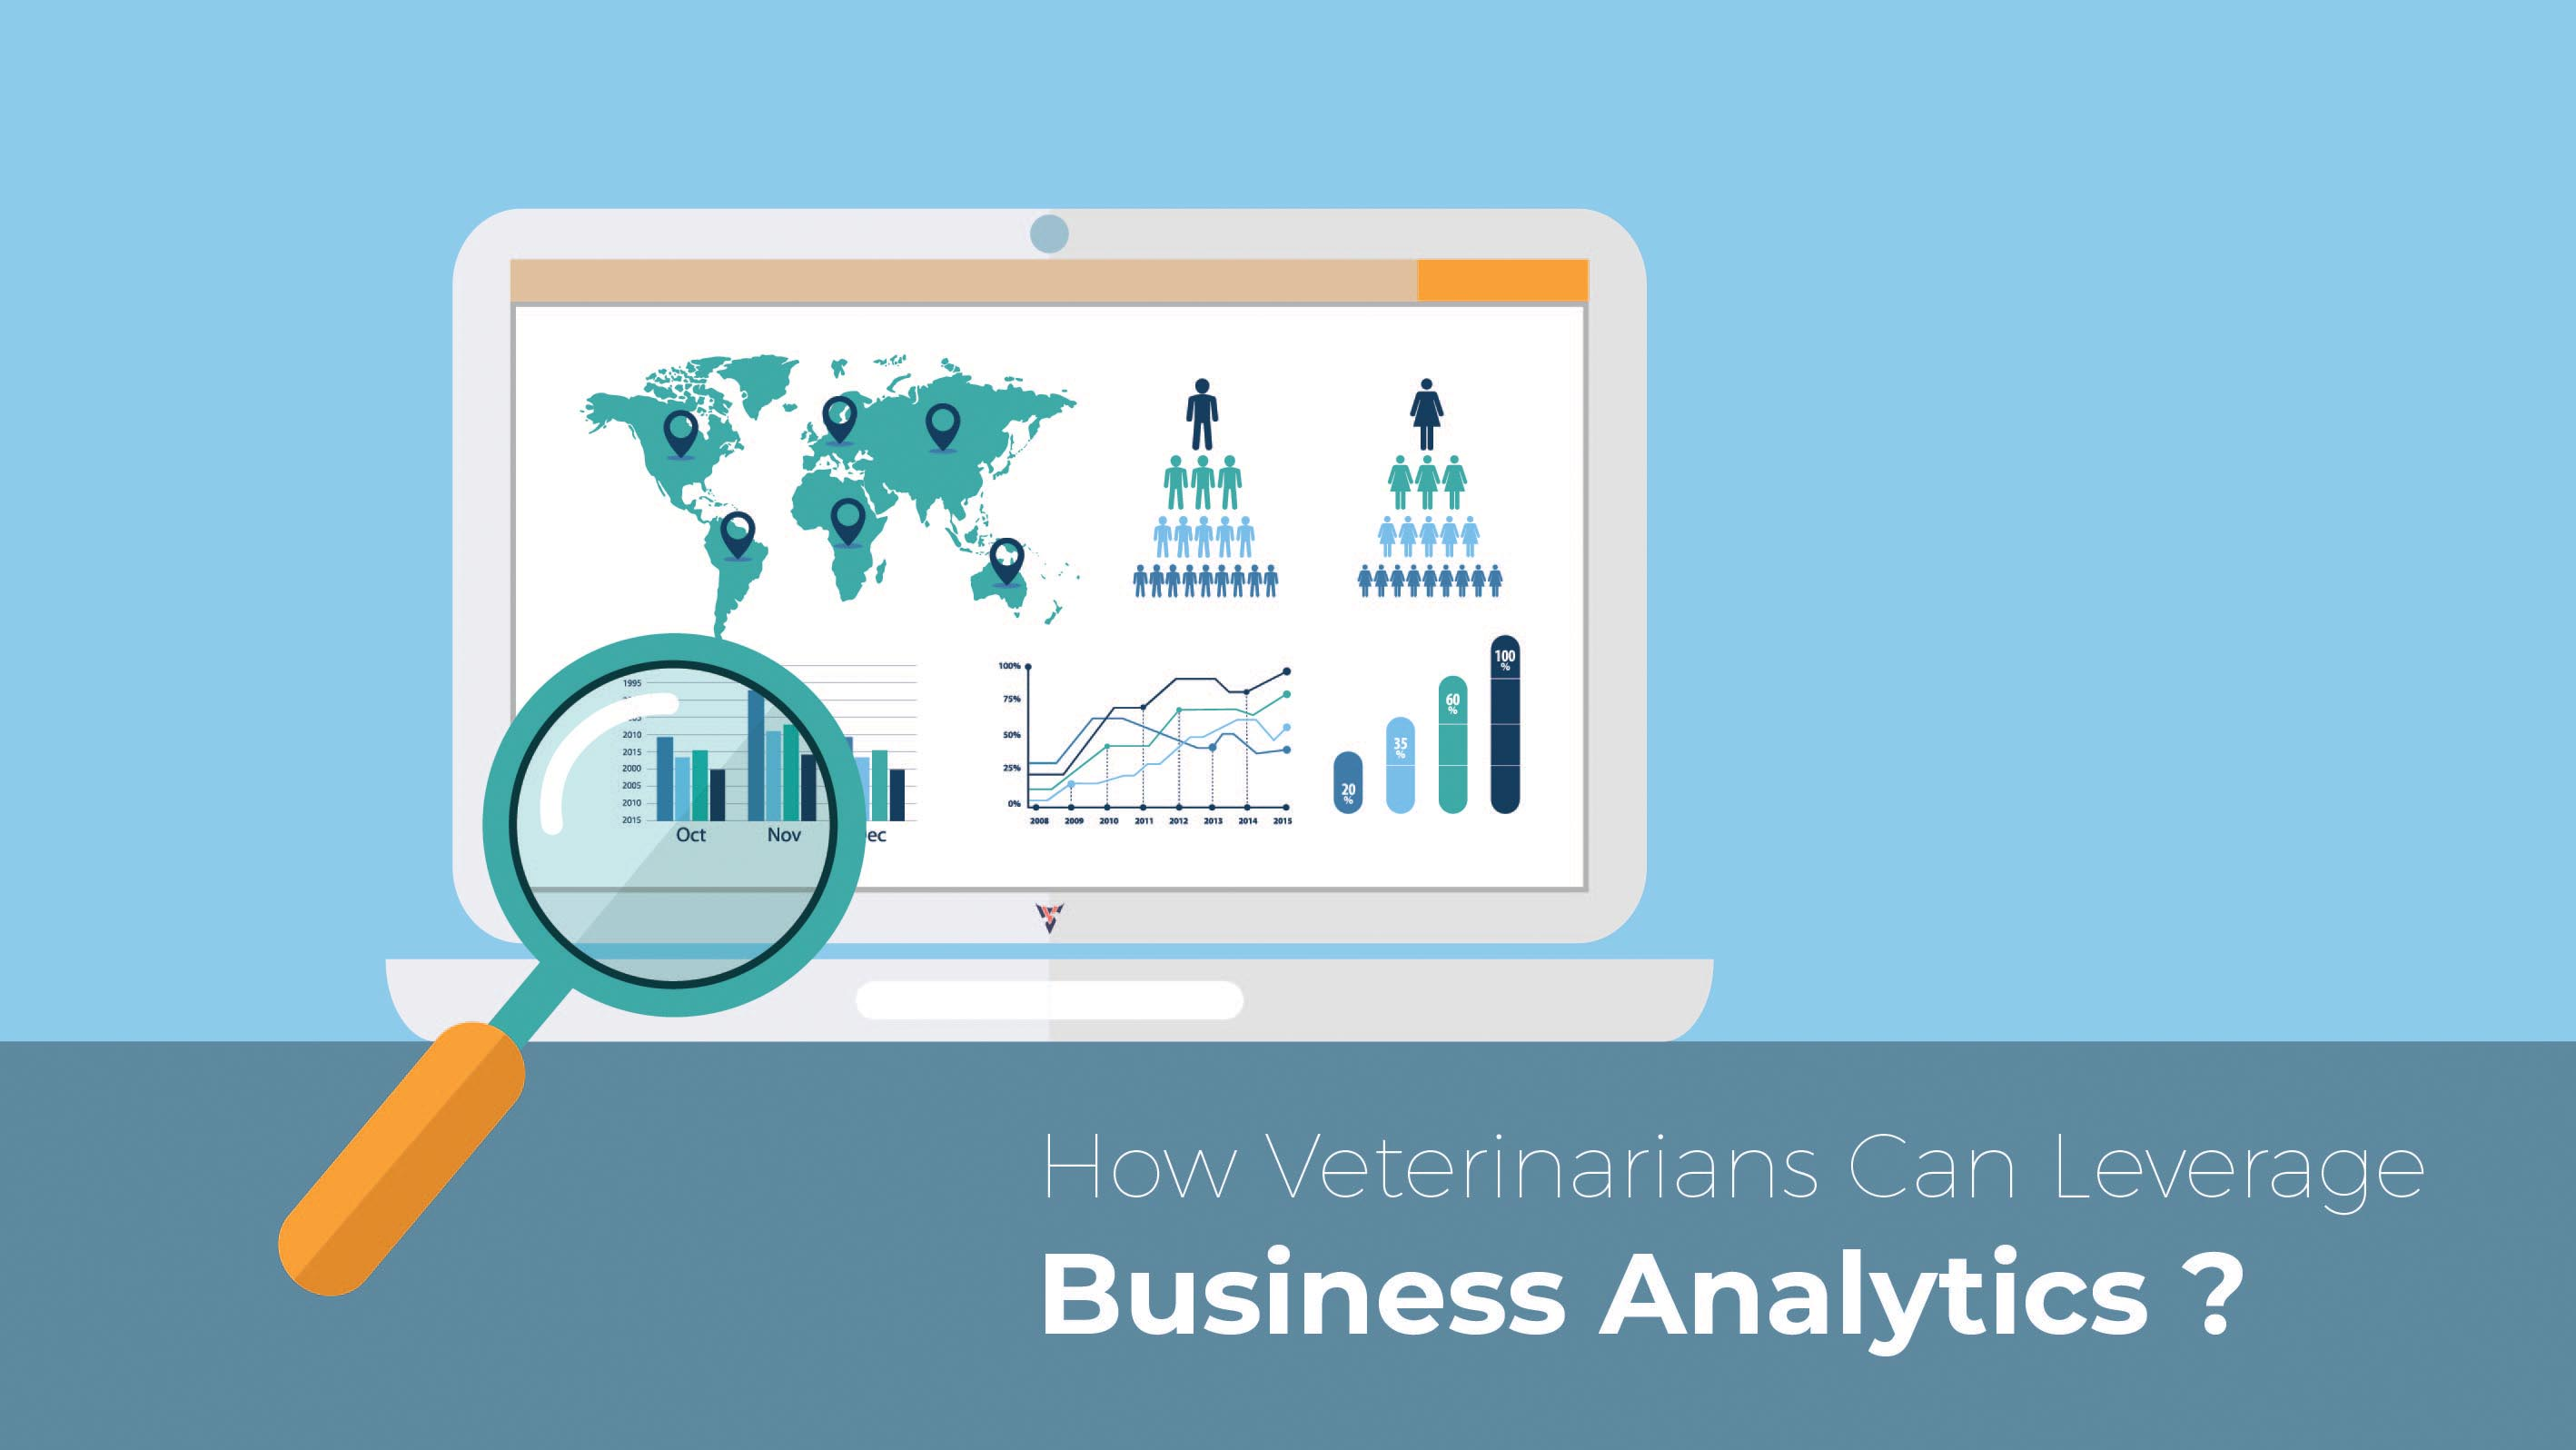 how veterinarians can leverage business analytics